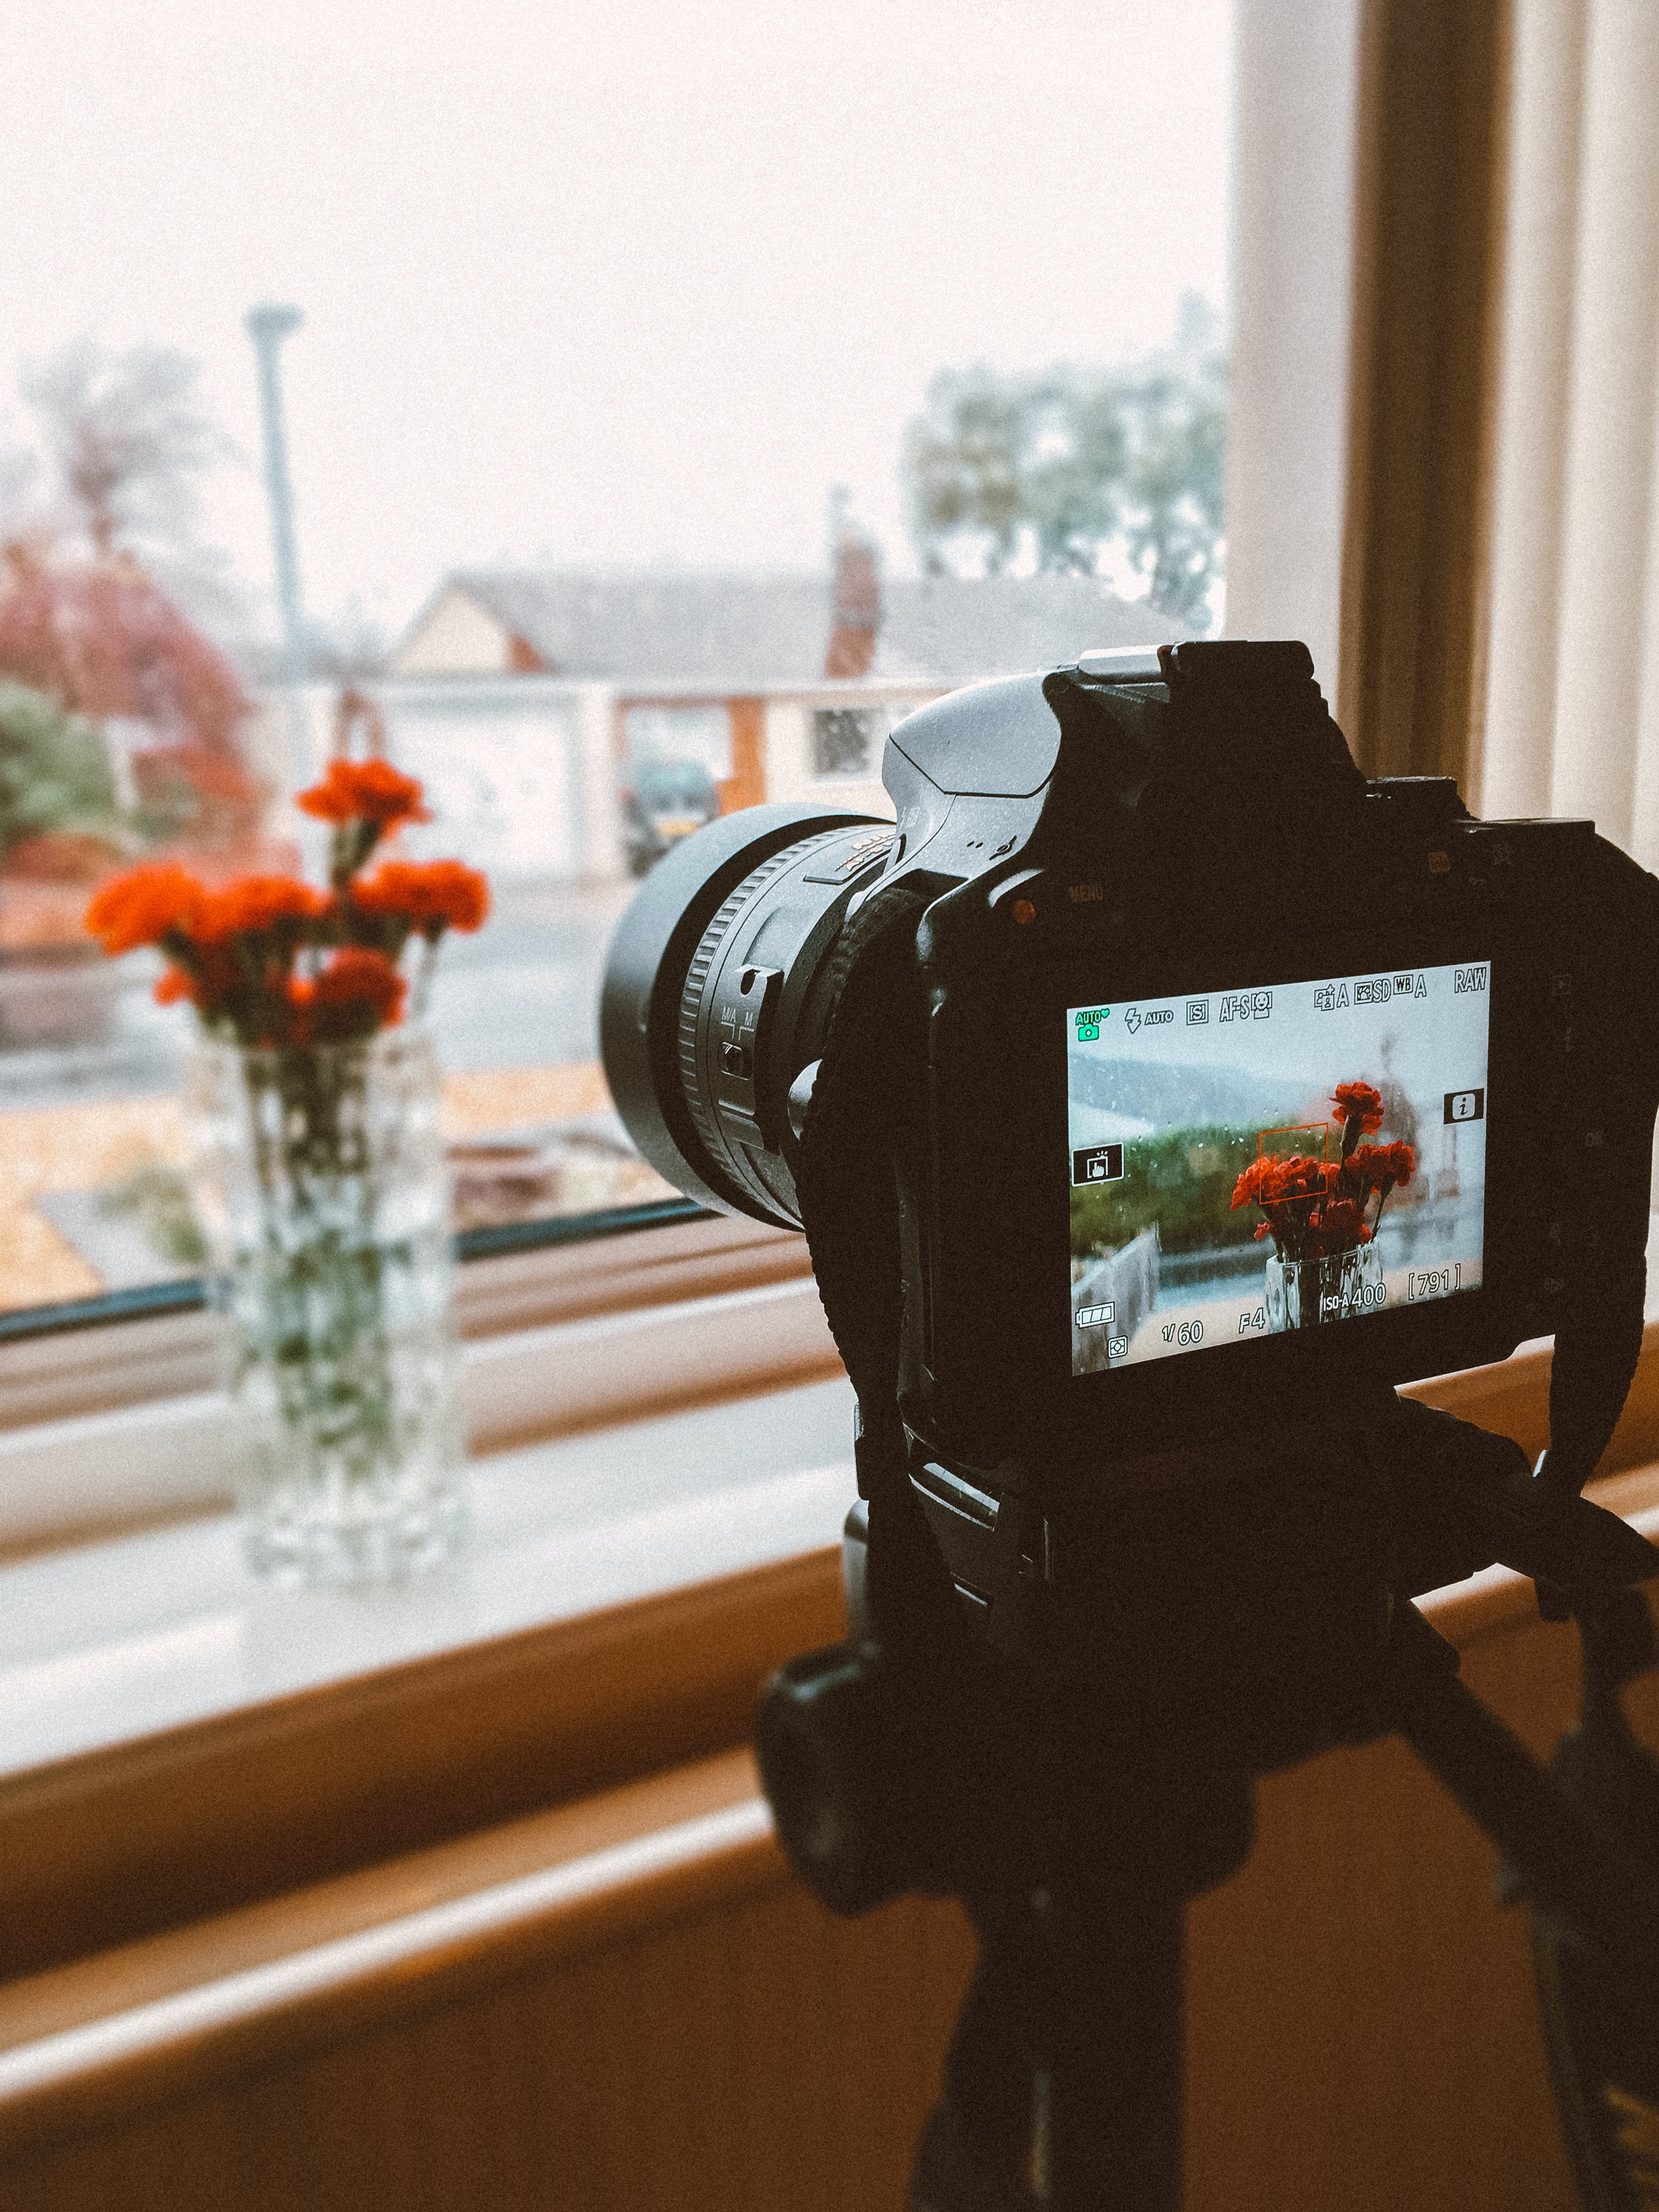 Black Dslr Camera Taking Photo of Orange Flowers in Clear Glass Flower Vase